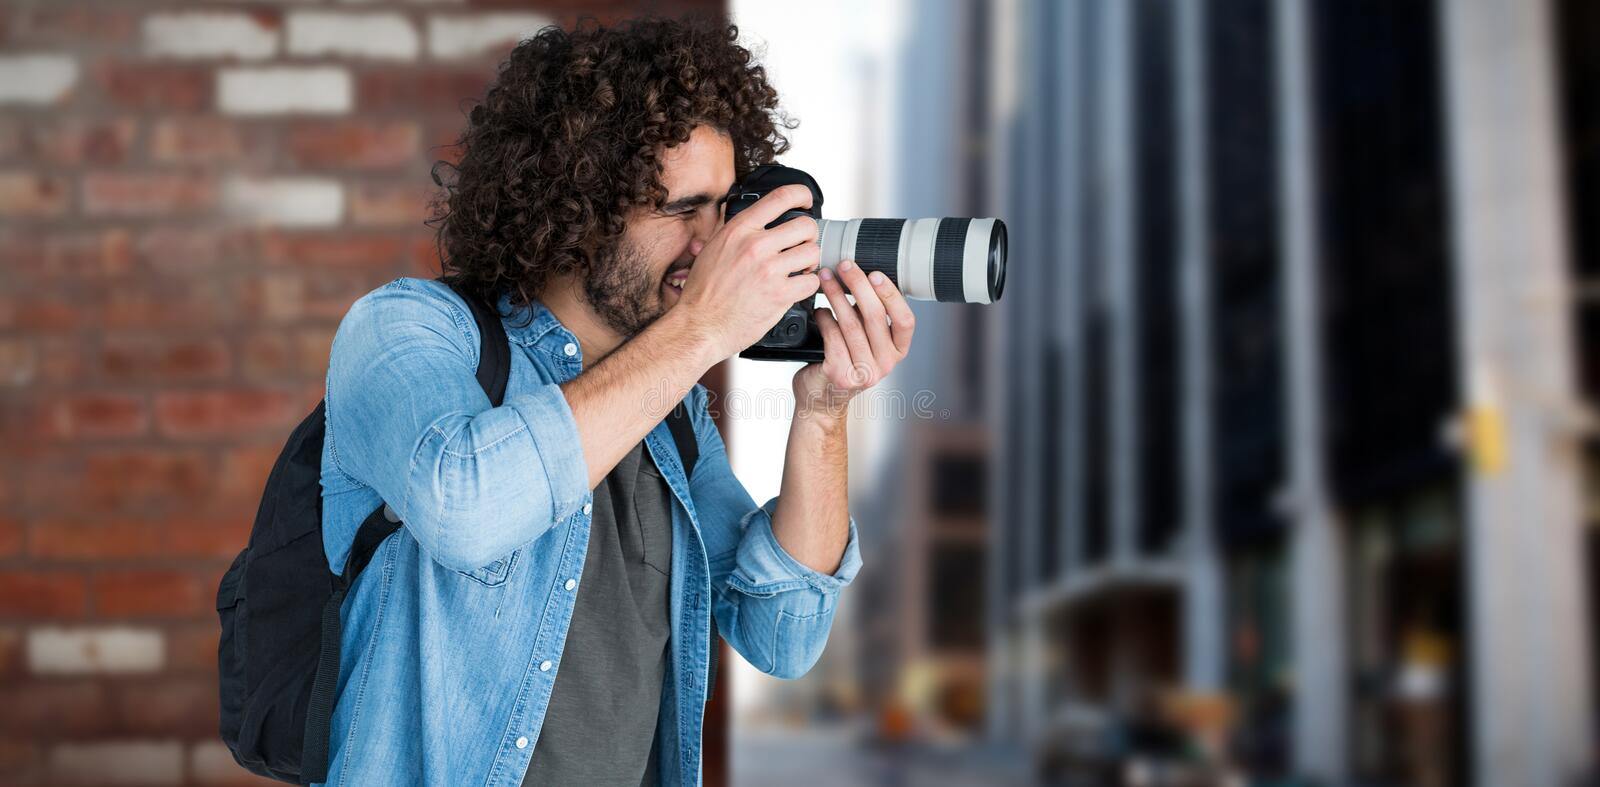 Composite image of professional male photographer taking picture. Professional male photographer taking picture against wall of a house stock photos